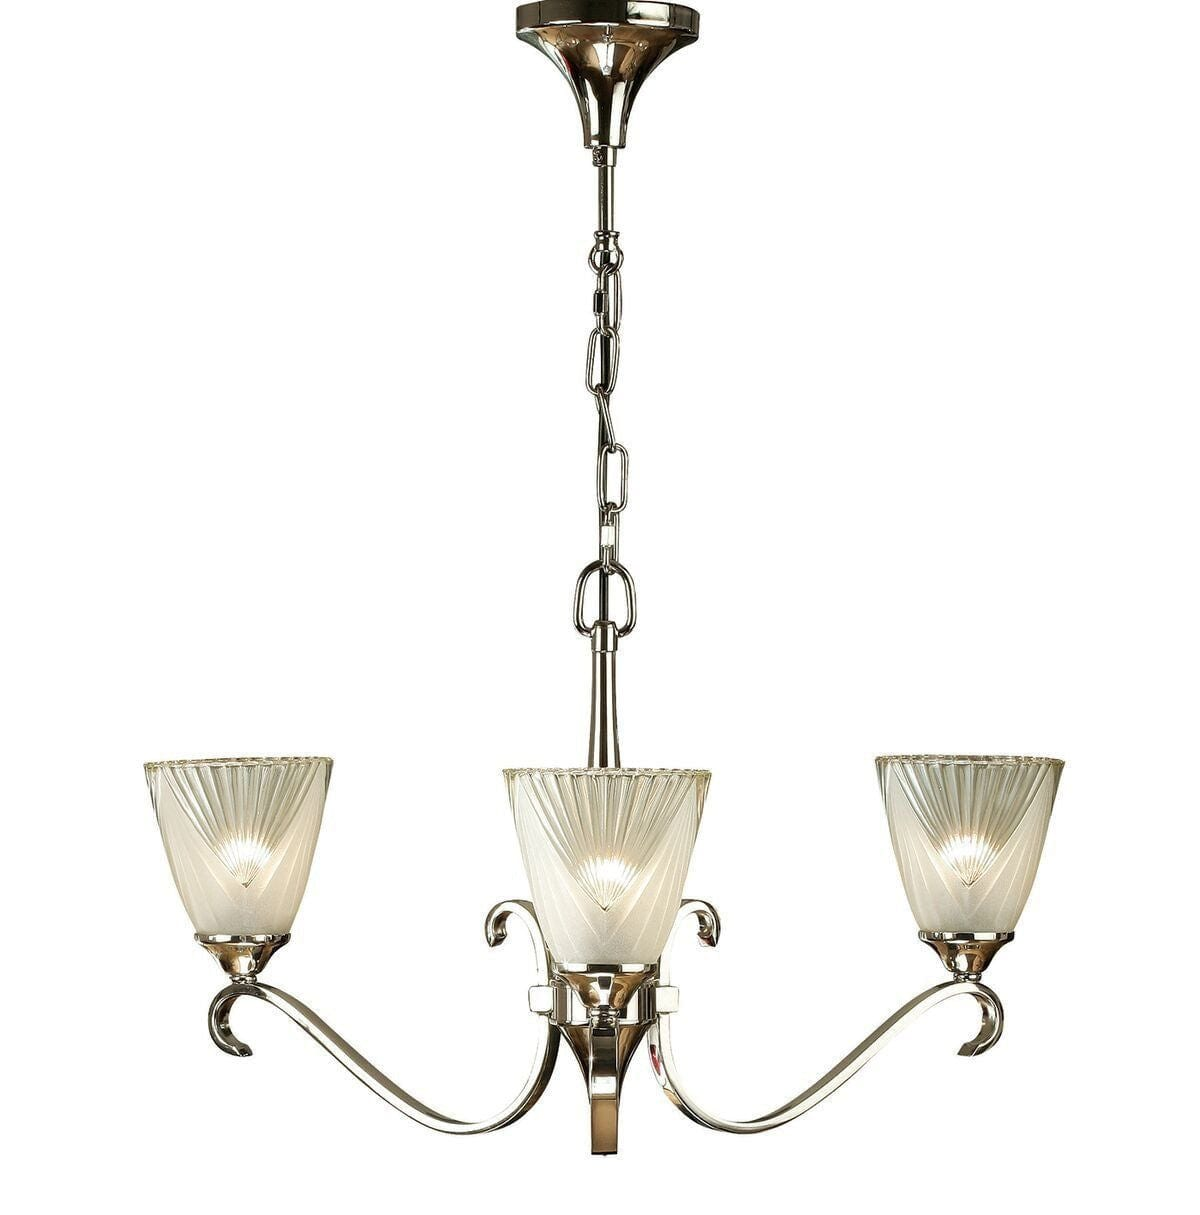 Art Deco Ceiling Light - Columbia 3 Light Polished Nickel Finish Chandelier 63440